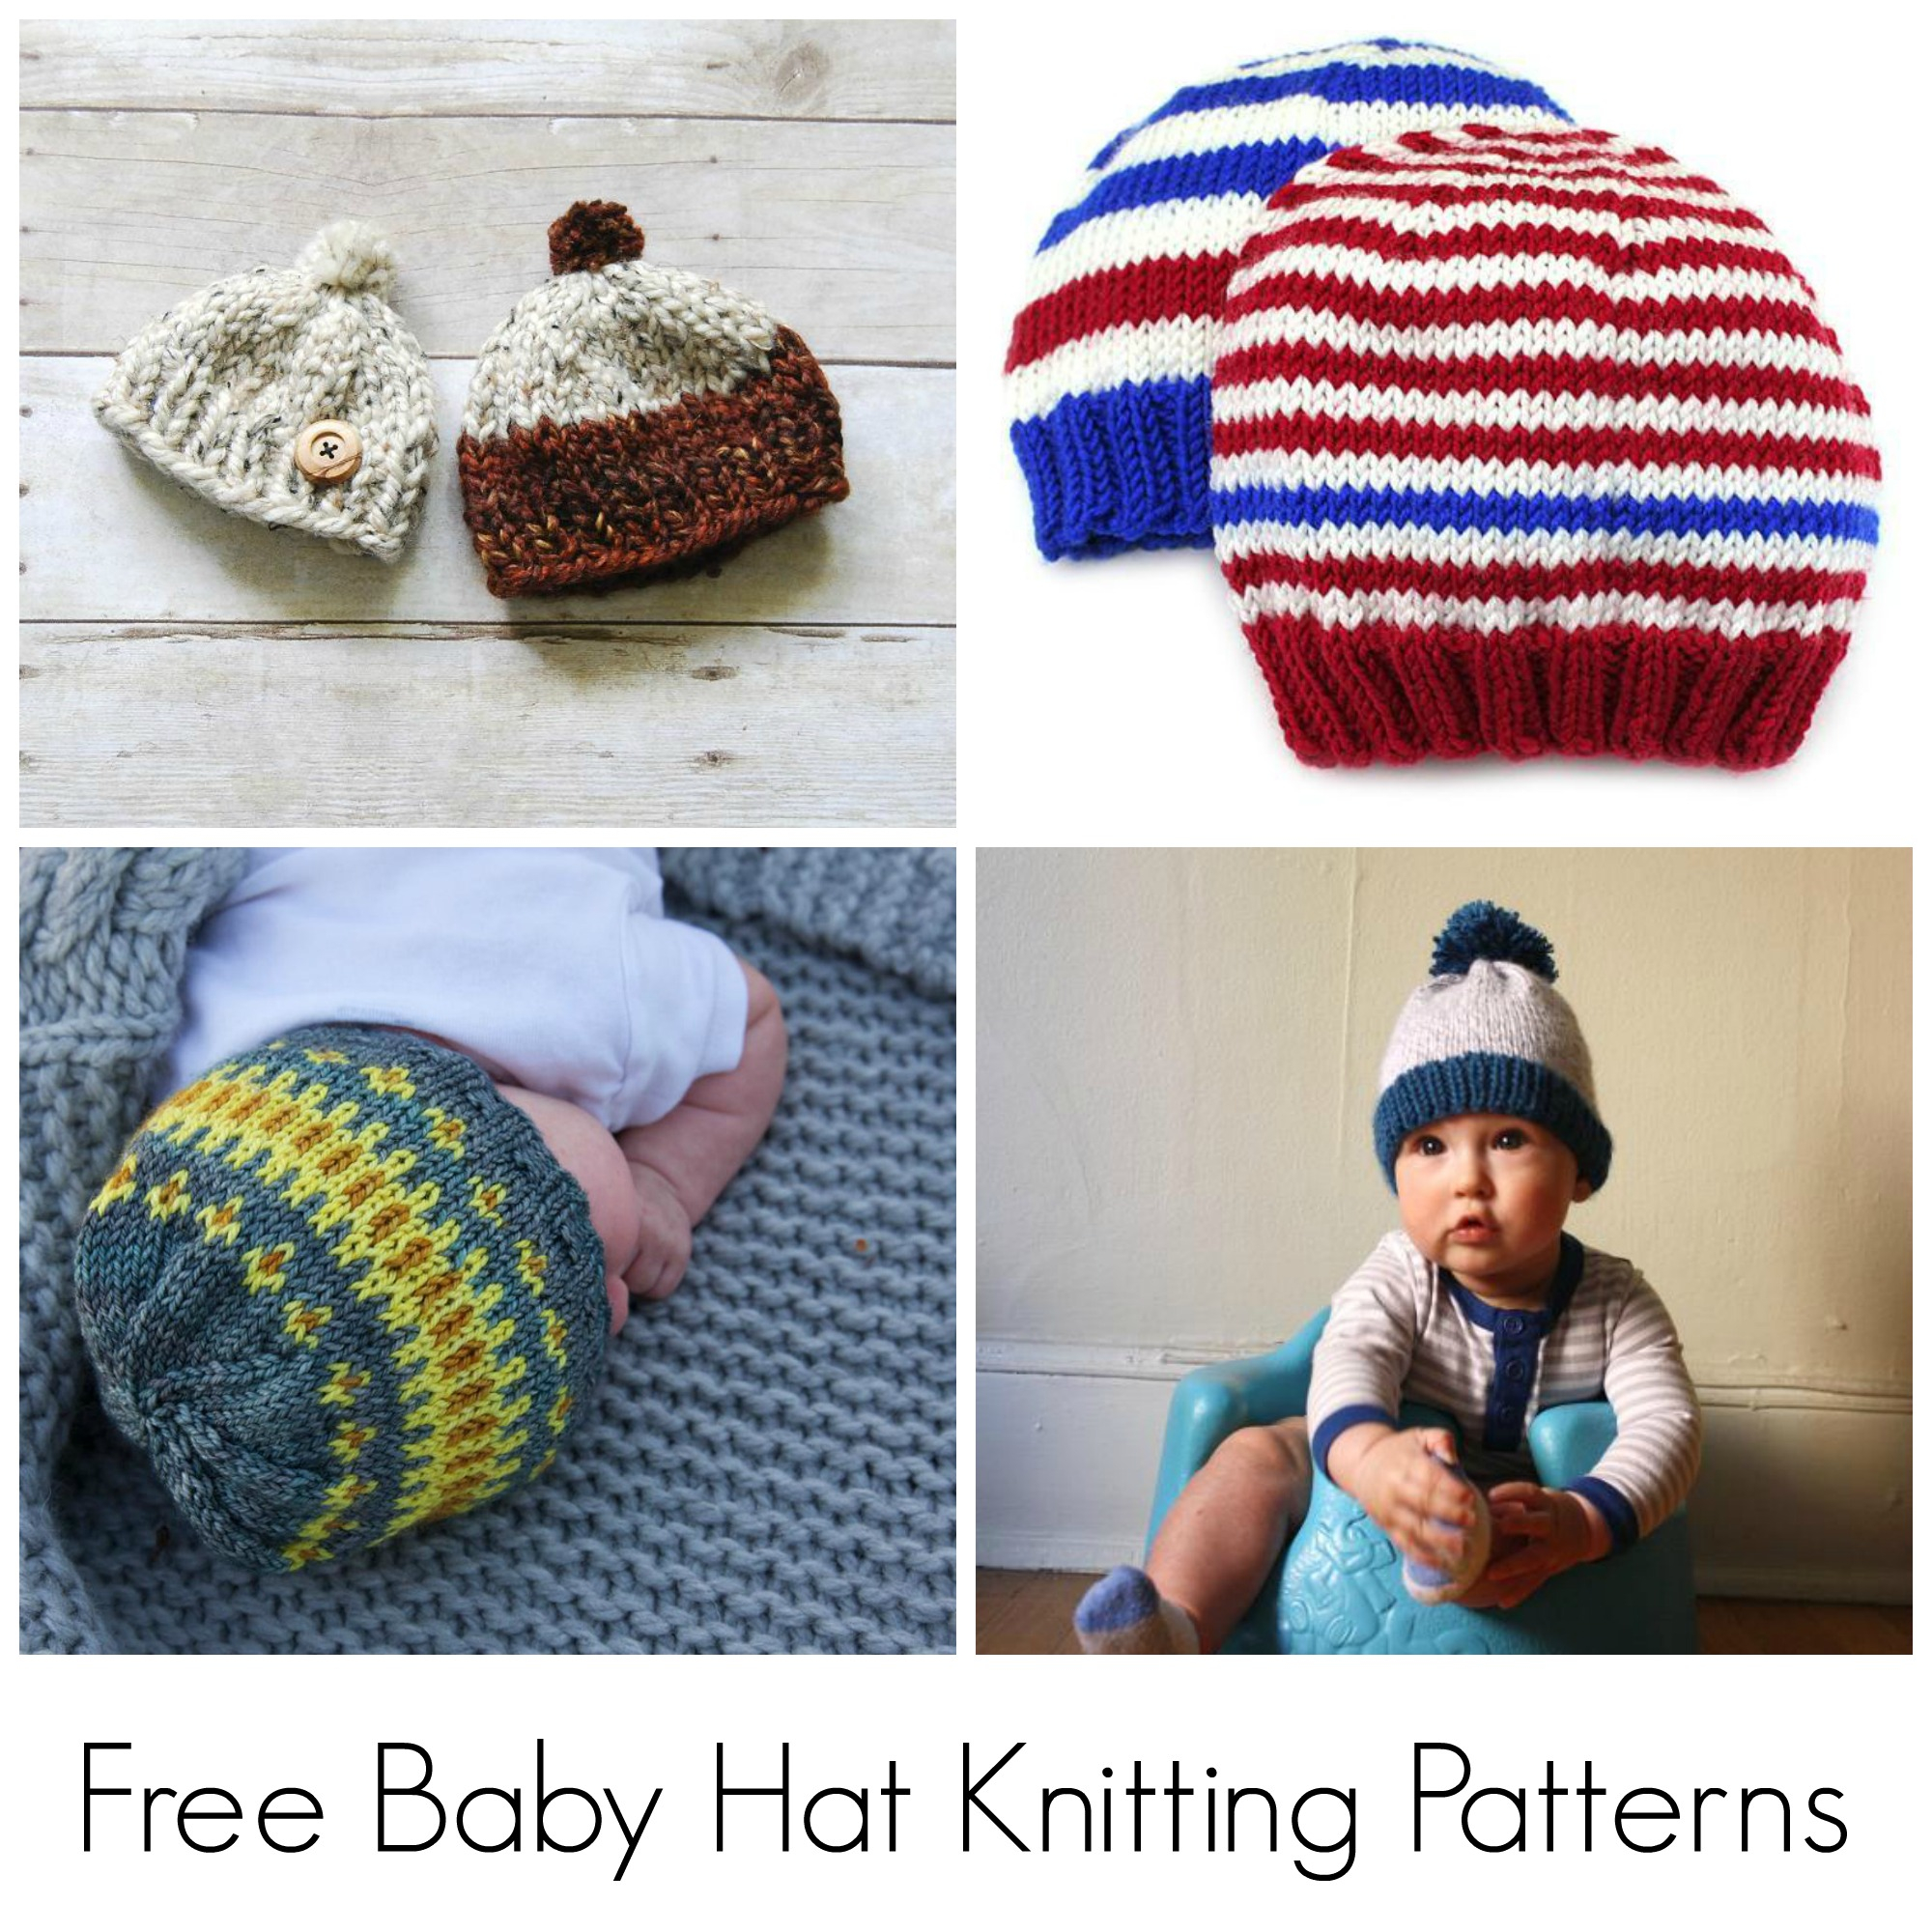 Free Baby Knitting Patterns 8 Ply 10 Free Knitting Patterns For Ba Hats On Craftsy